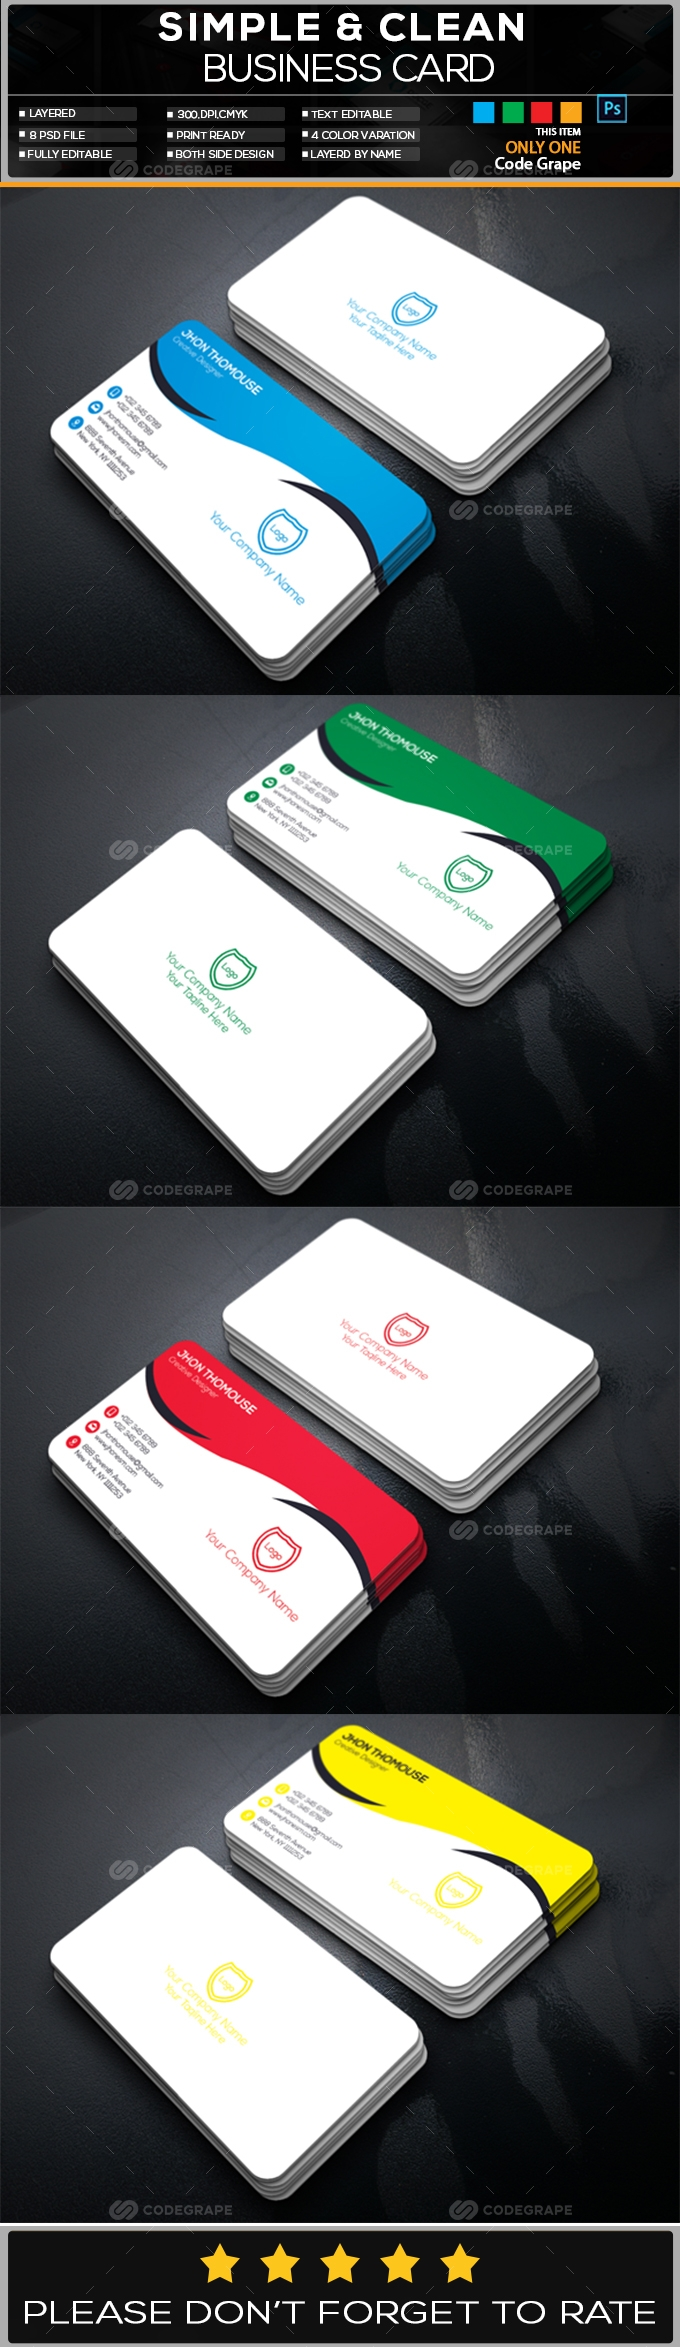 Creative Business Card Vol - 15